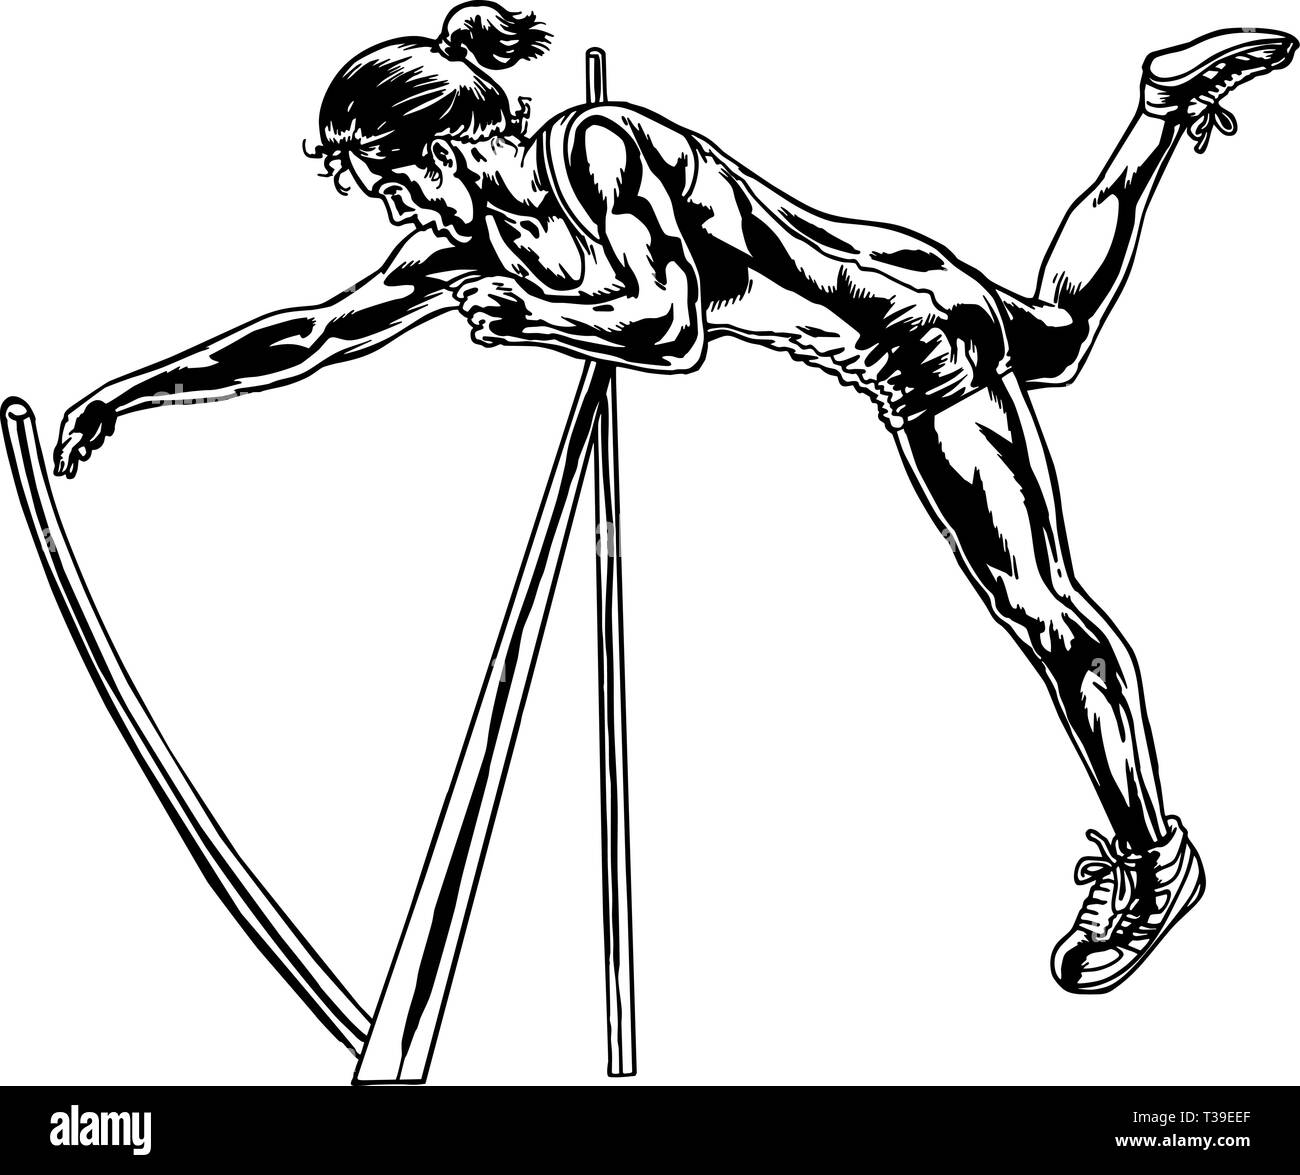 Pole Vaulter Vector Illustration Stock Vector